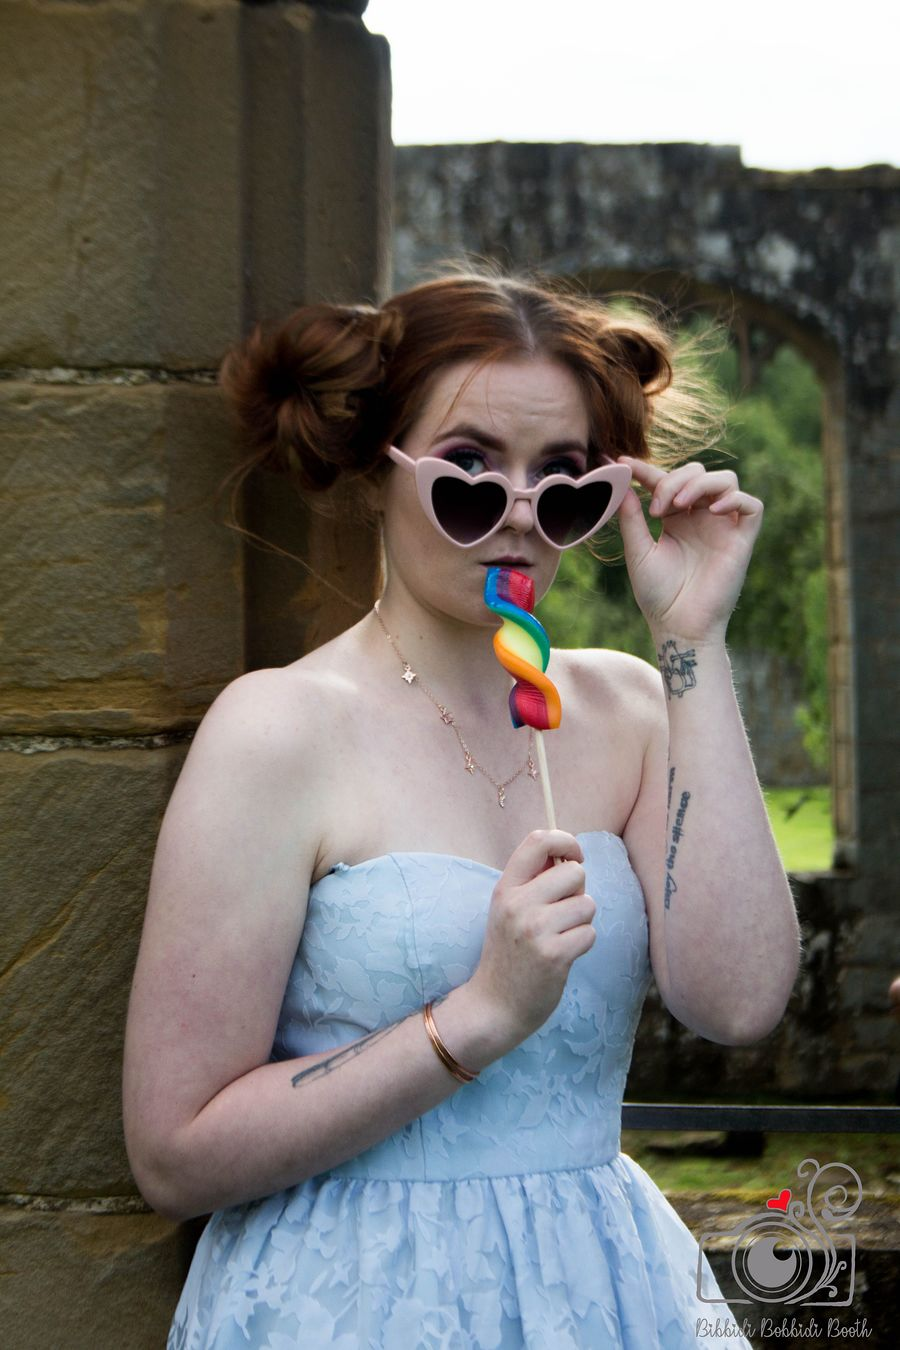 Lollypop / Photography by B.B.Booth, Model The Paranormal Student, Makeup by Kiri Kosmetikos HMUA / Uploaded 30th September 2019 @ 07:46 PM